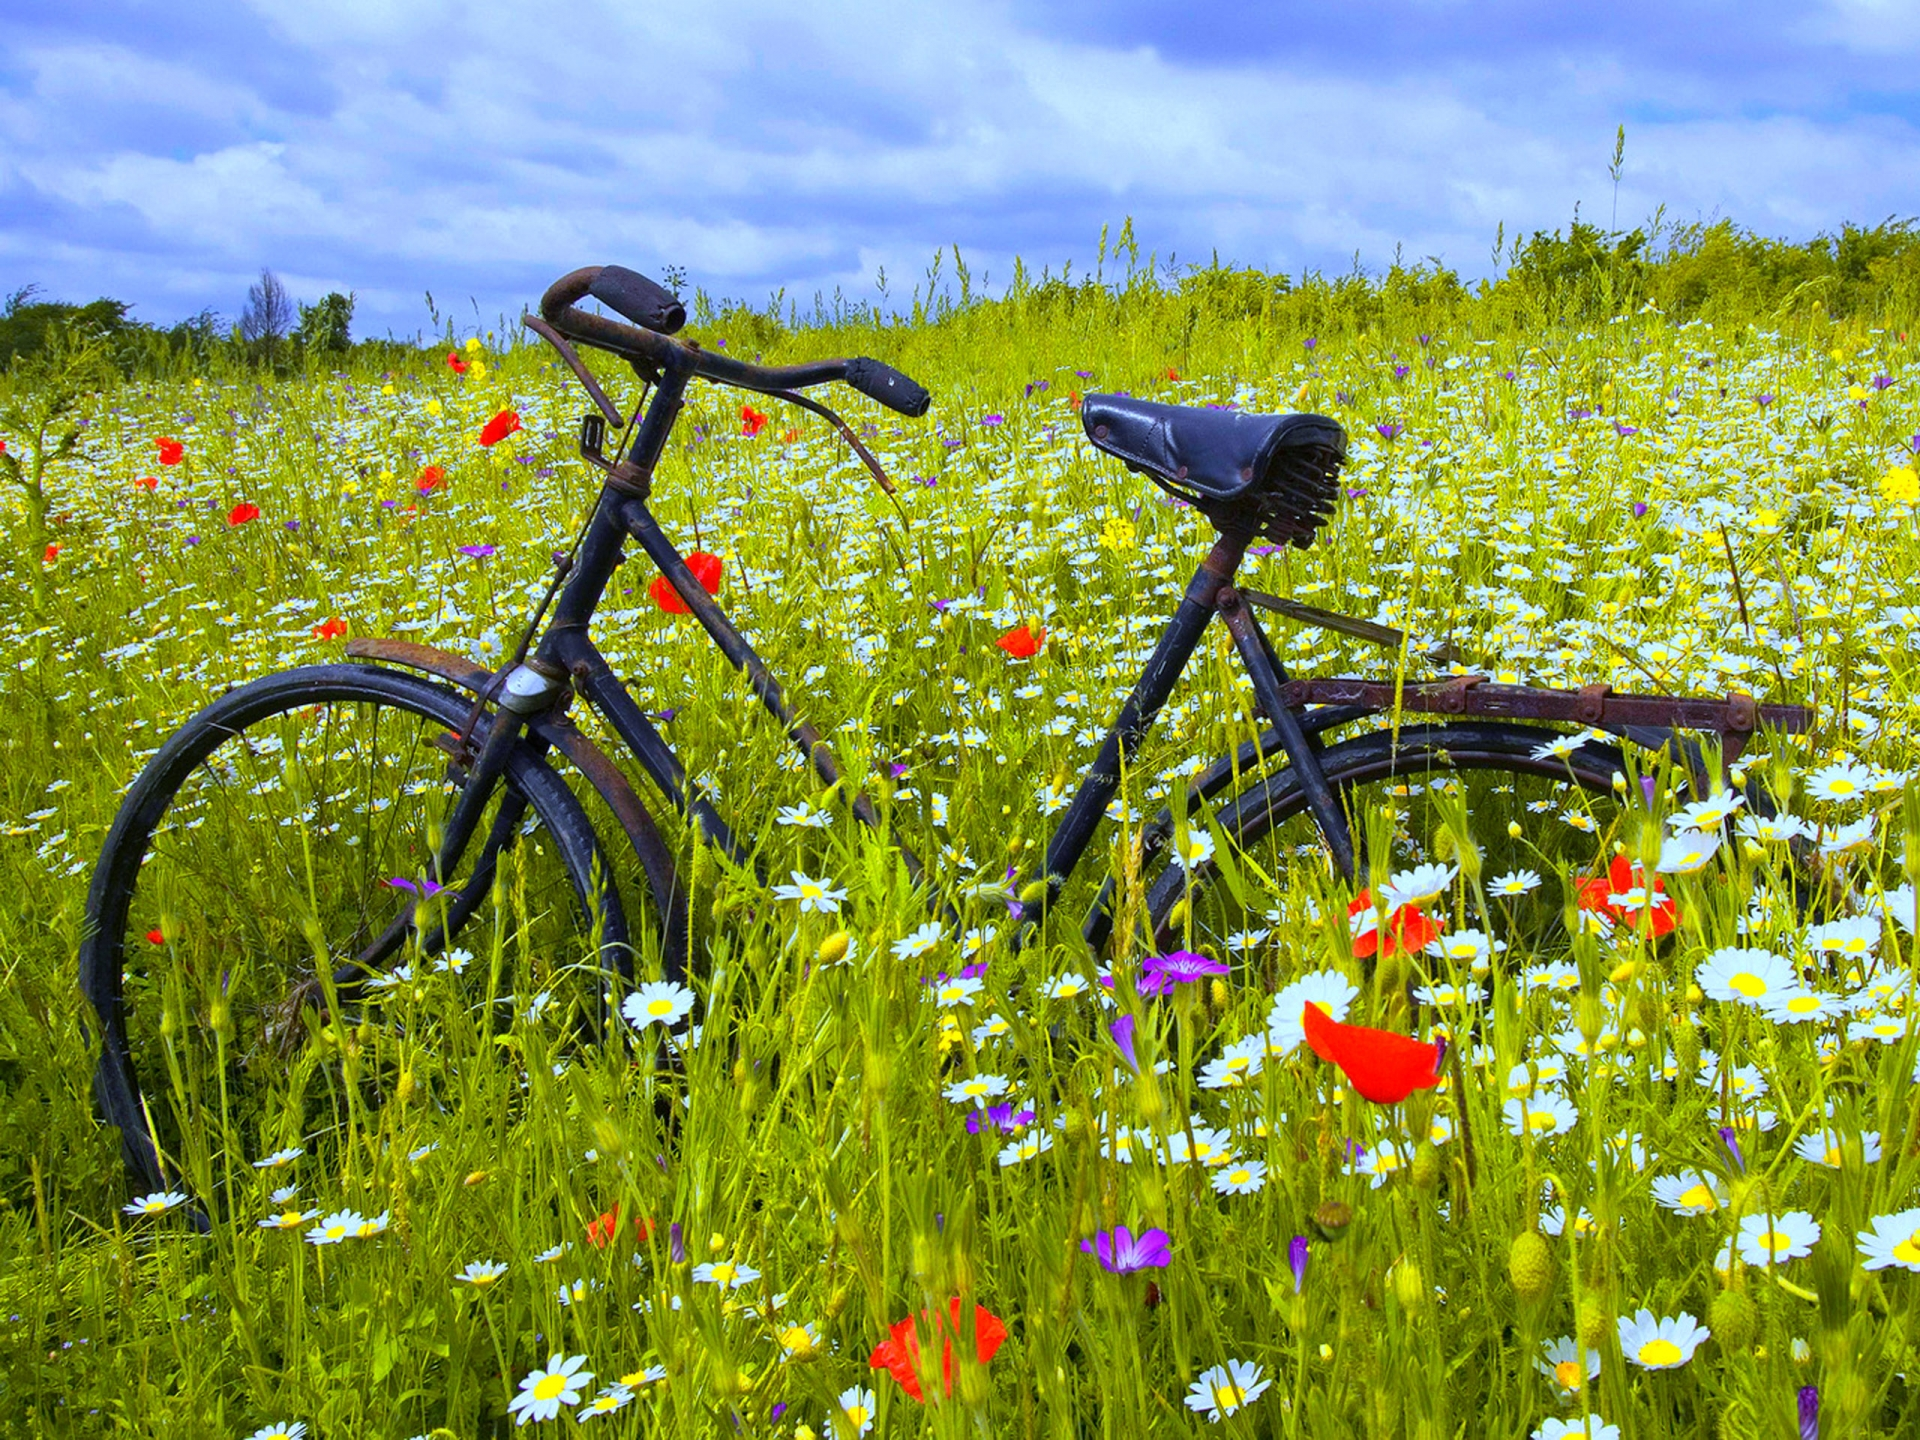 Flower And Bicycle Wallpaper Desktop Wallpaper WallpaperLepi 1920x1440